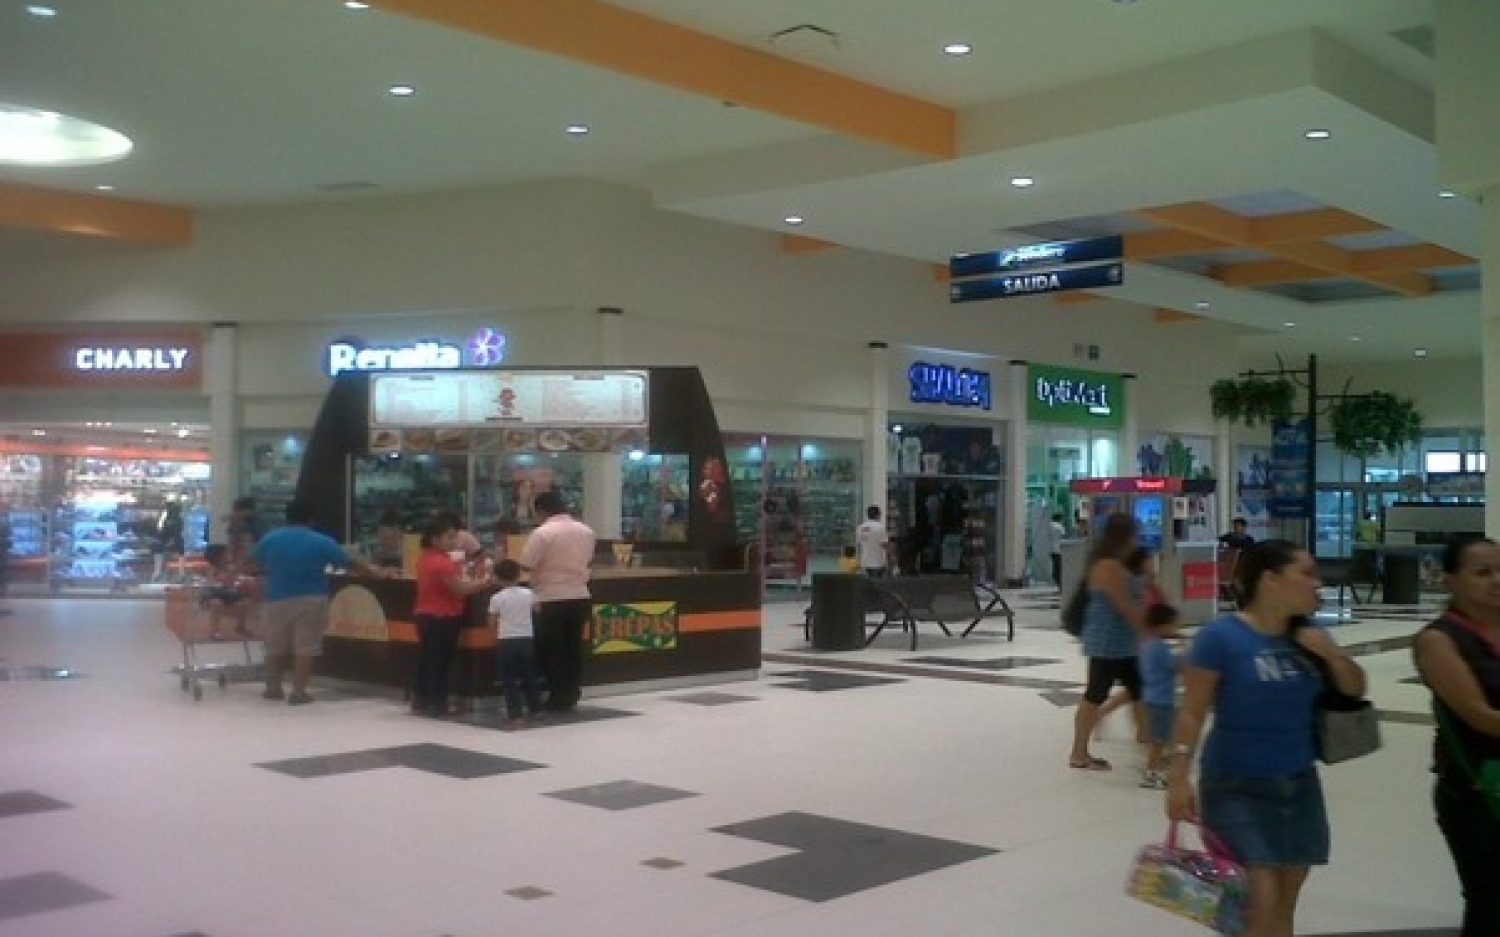 Co-Plaza Sendero Villahermosa (59)